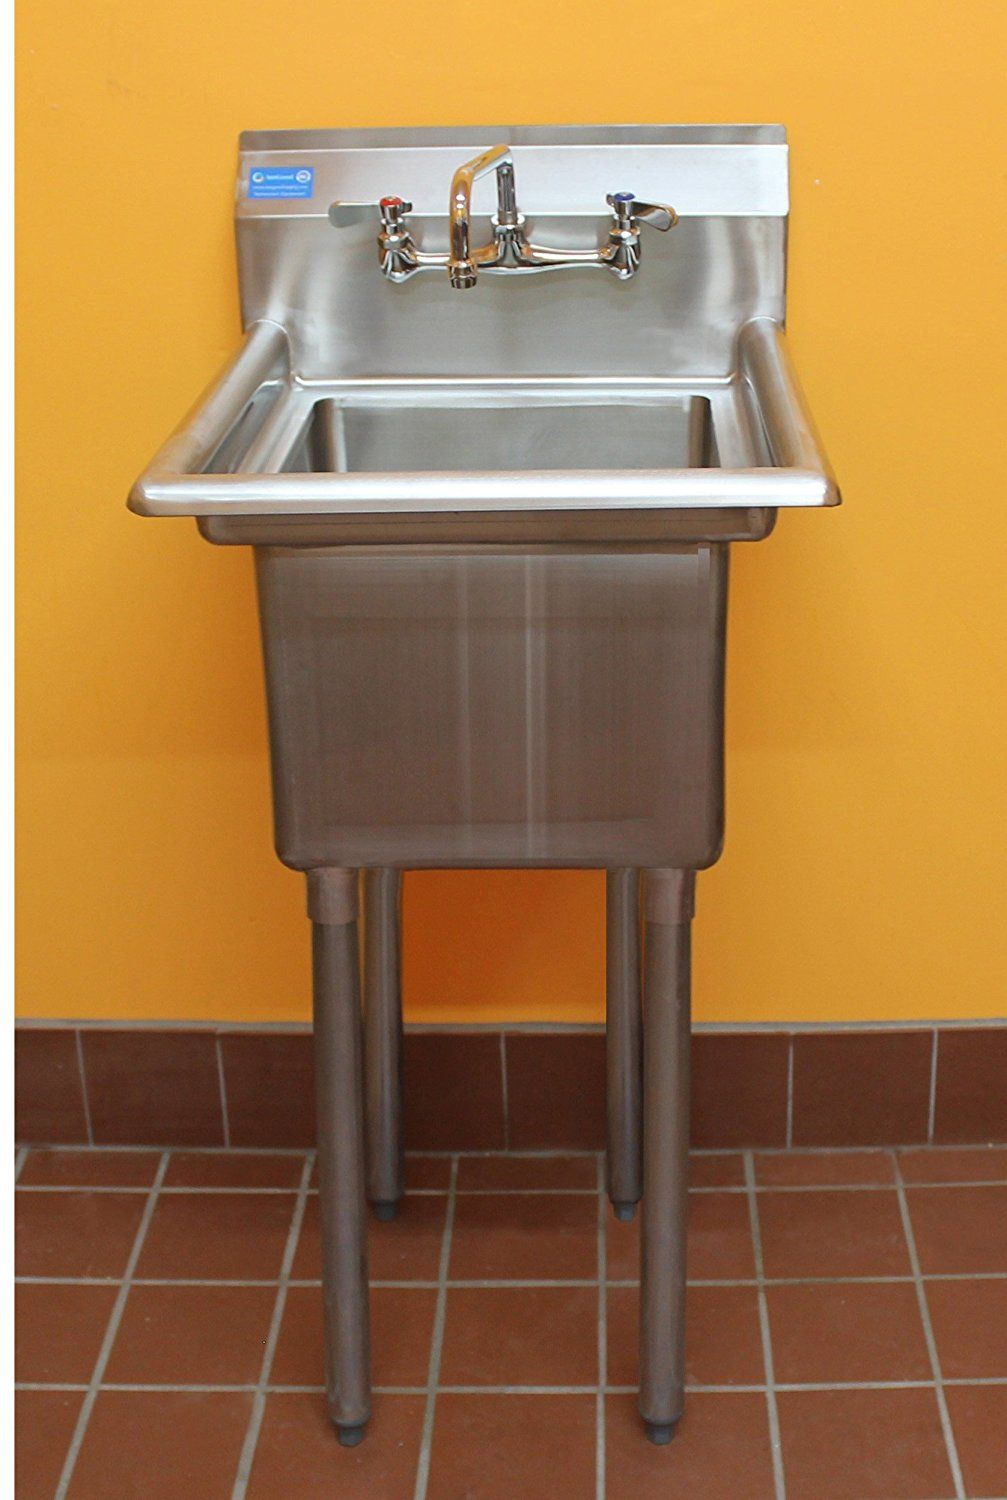 Amgood Utility Stainless Steel Sink 1 Compartment Laundry Room